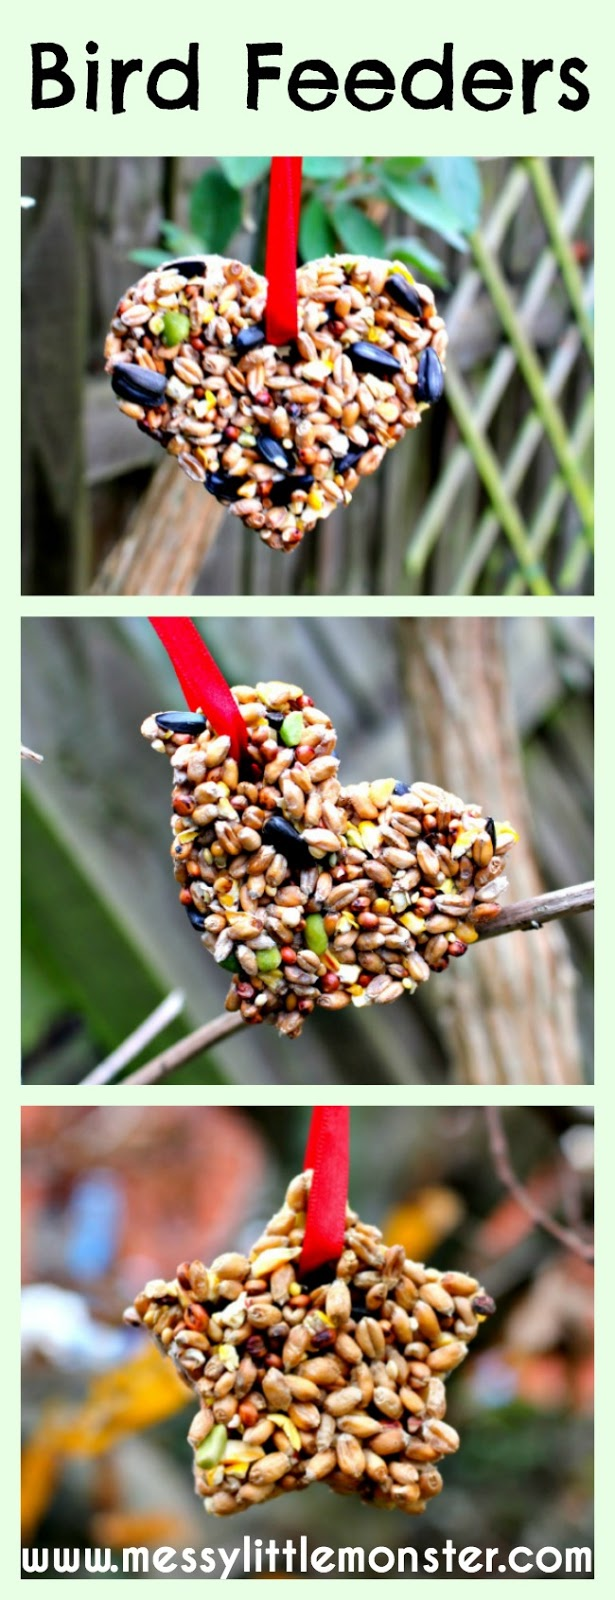 How to make homemade bird feeders. These easy diy bird feeders for kids to make are made using just 3 ingredients and a cookie cutter. This homemade bird food would be a great homemade gift that kids can make or a fun outdoor nature activity.